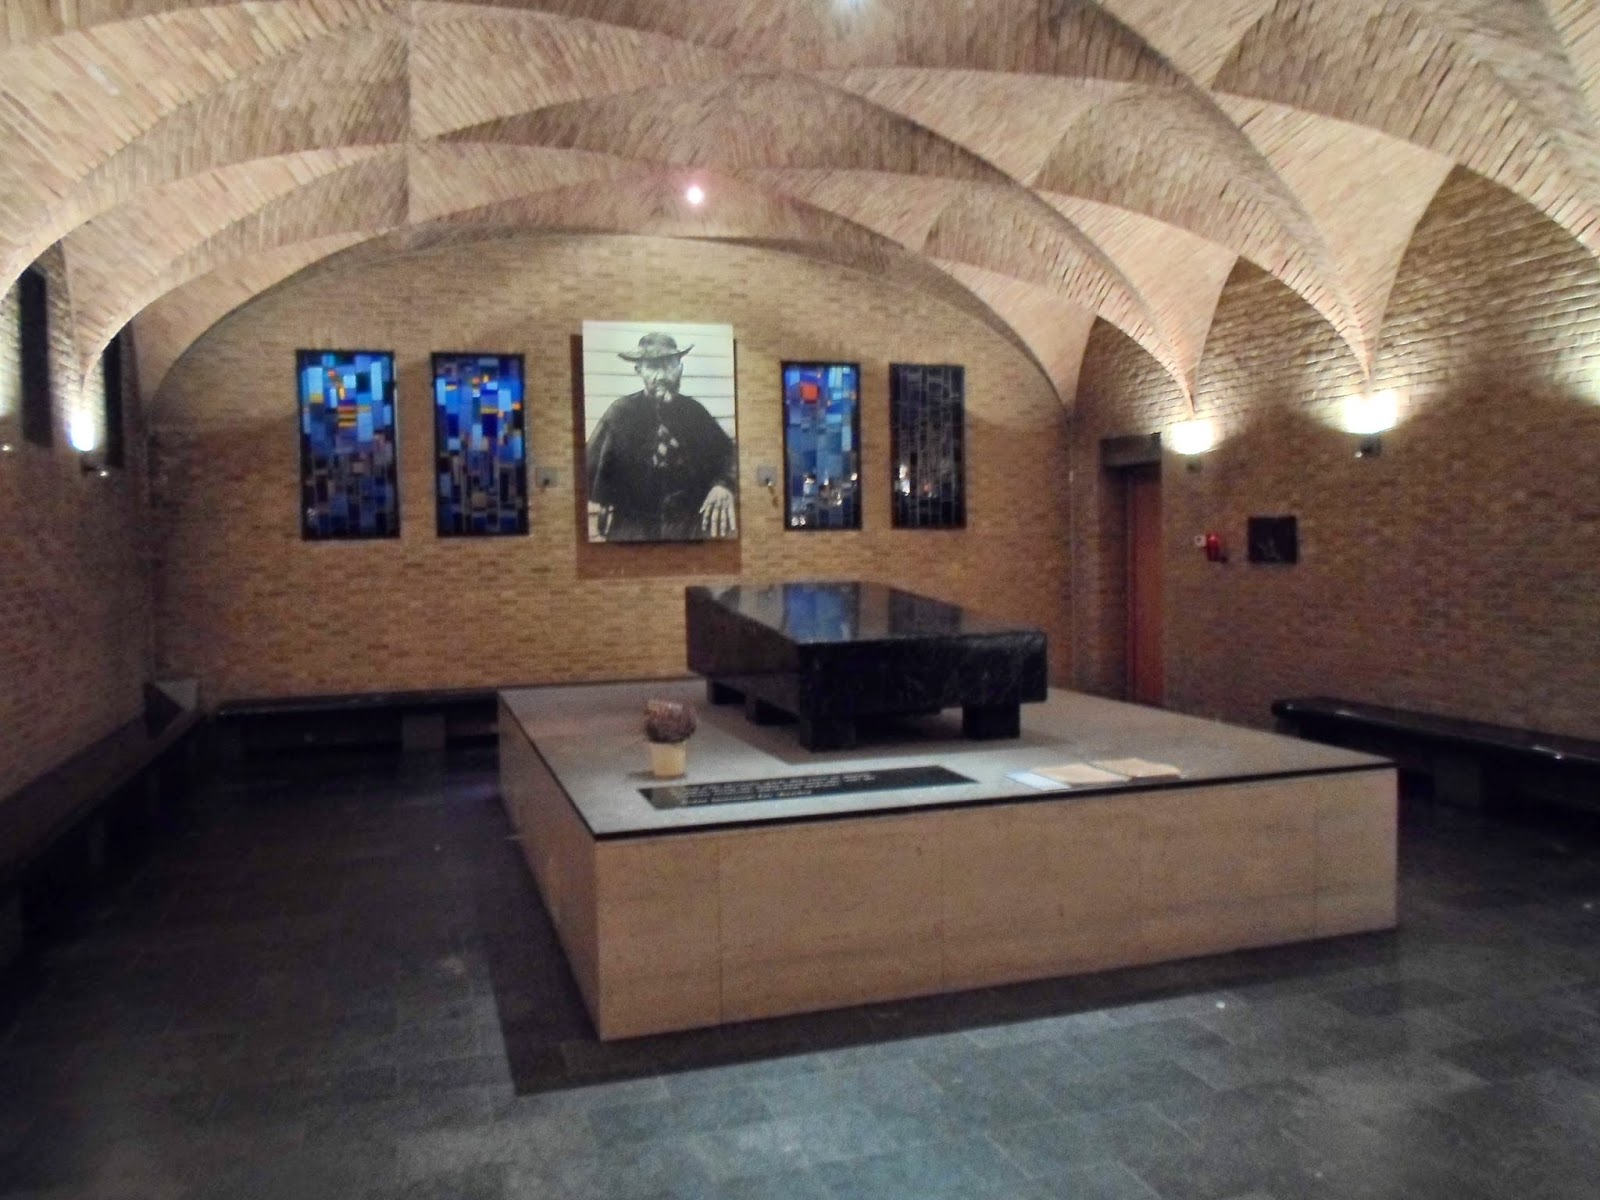 Shrine of St. Damien in the Cathedral of Honolulu, Hawaii